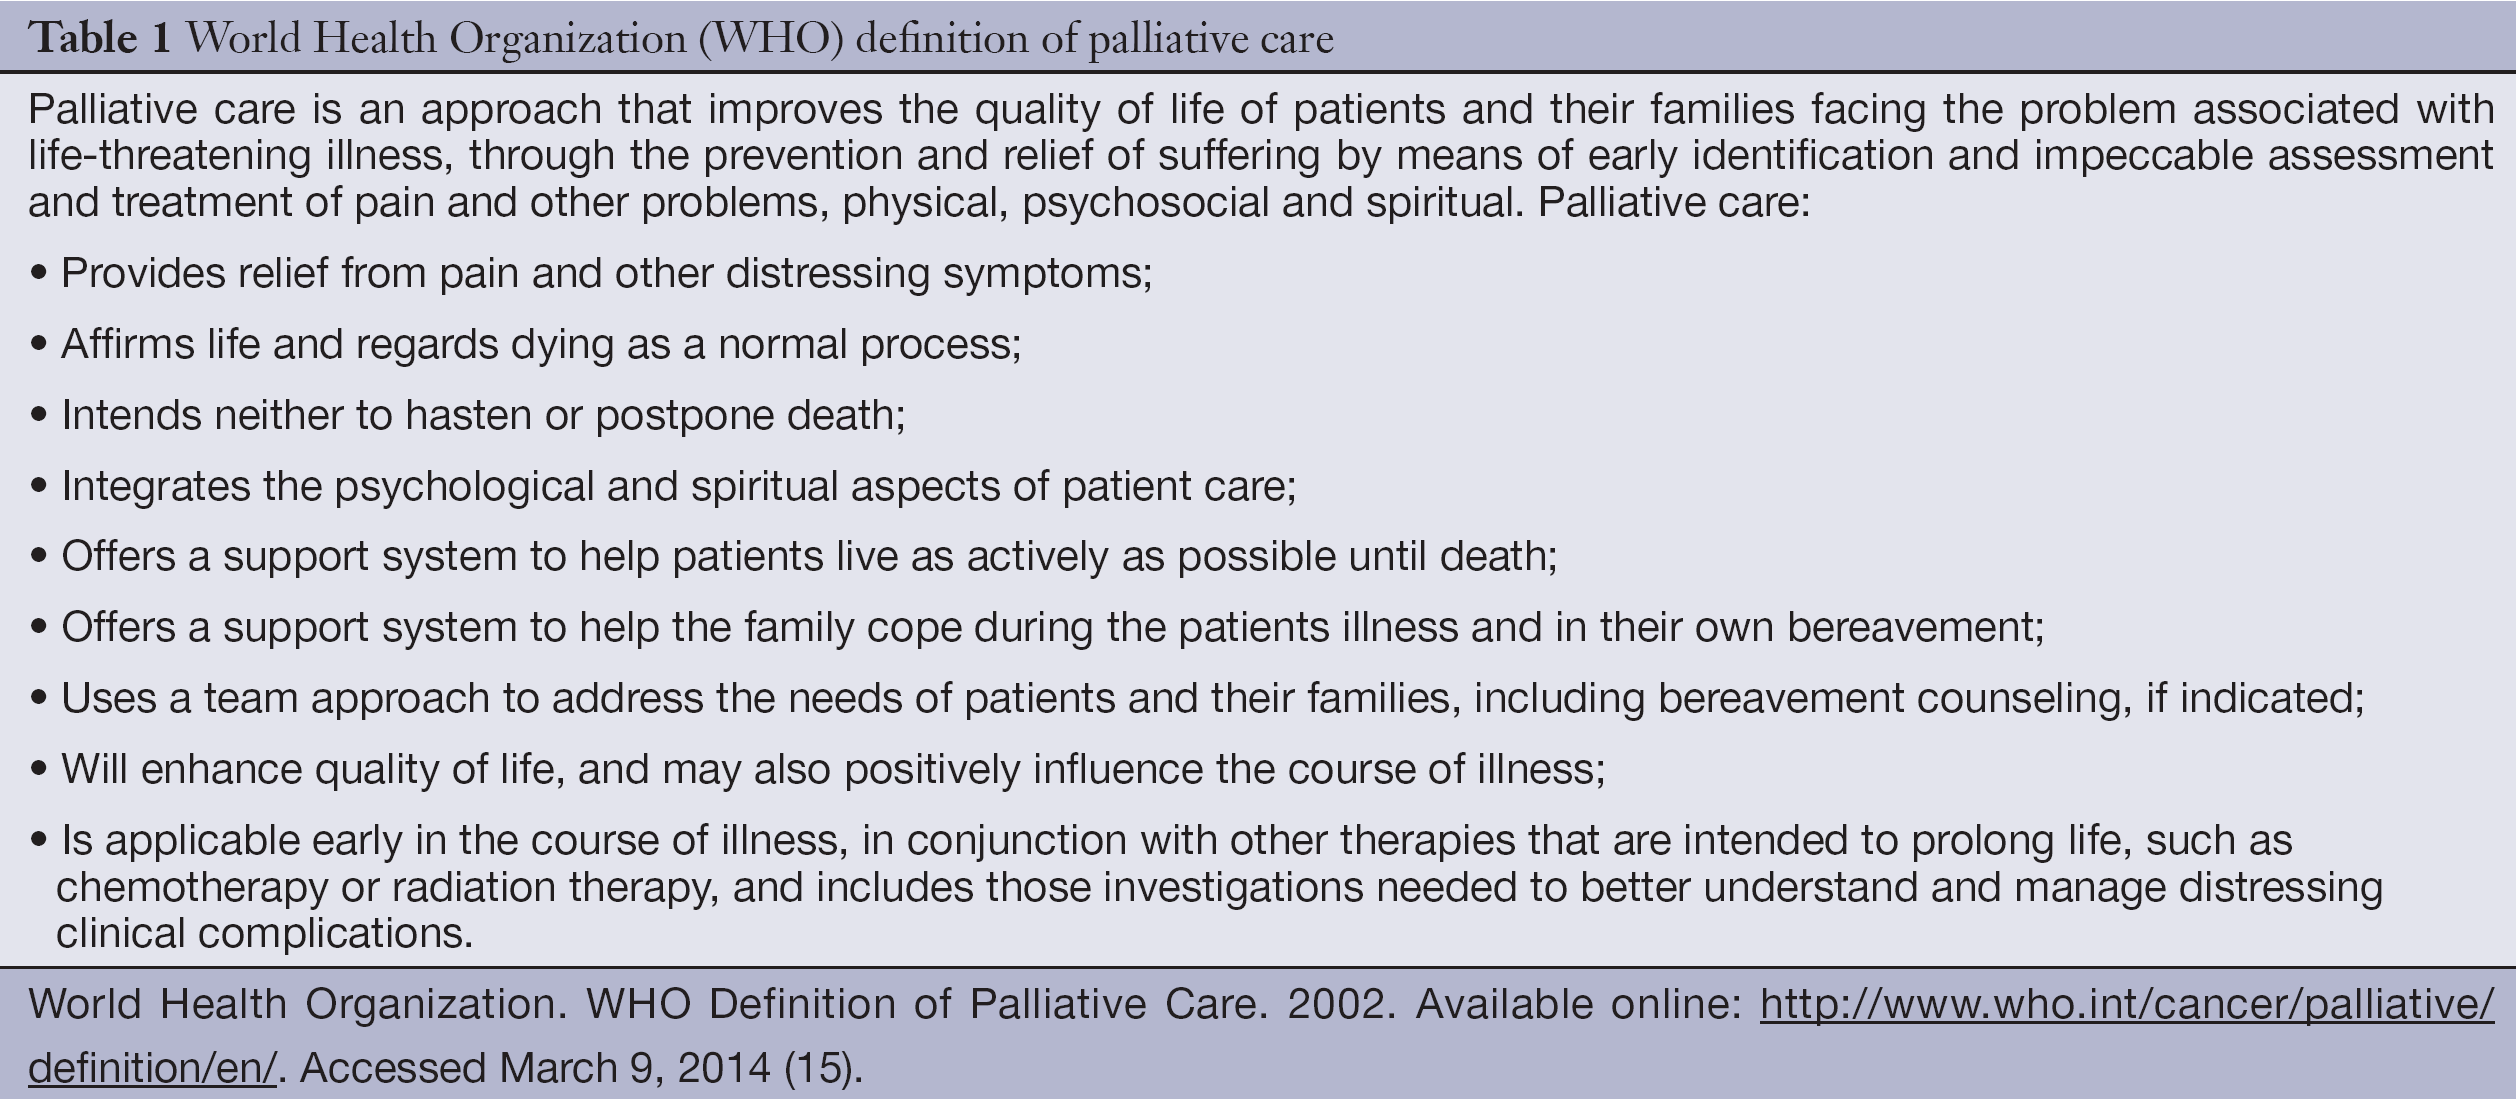 the global state of palliative care—progress and challenges in